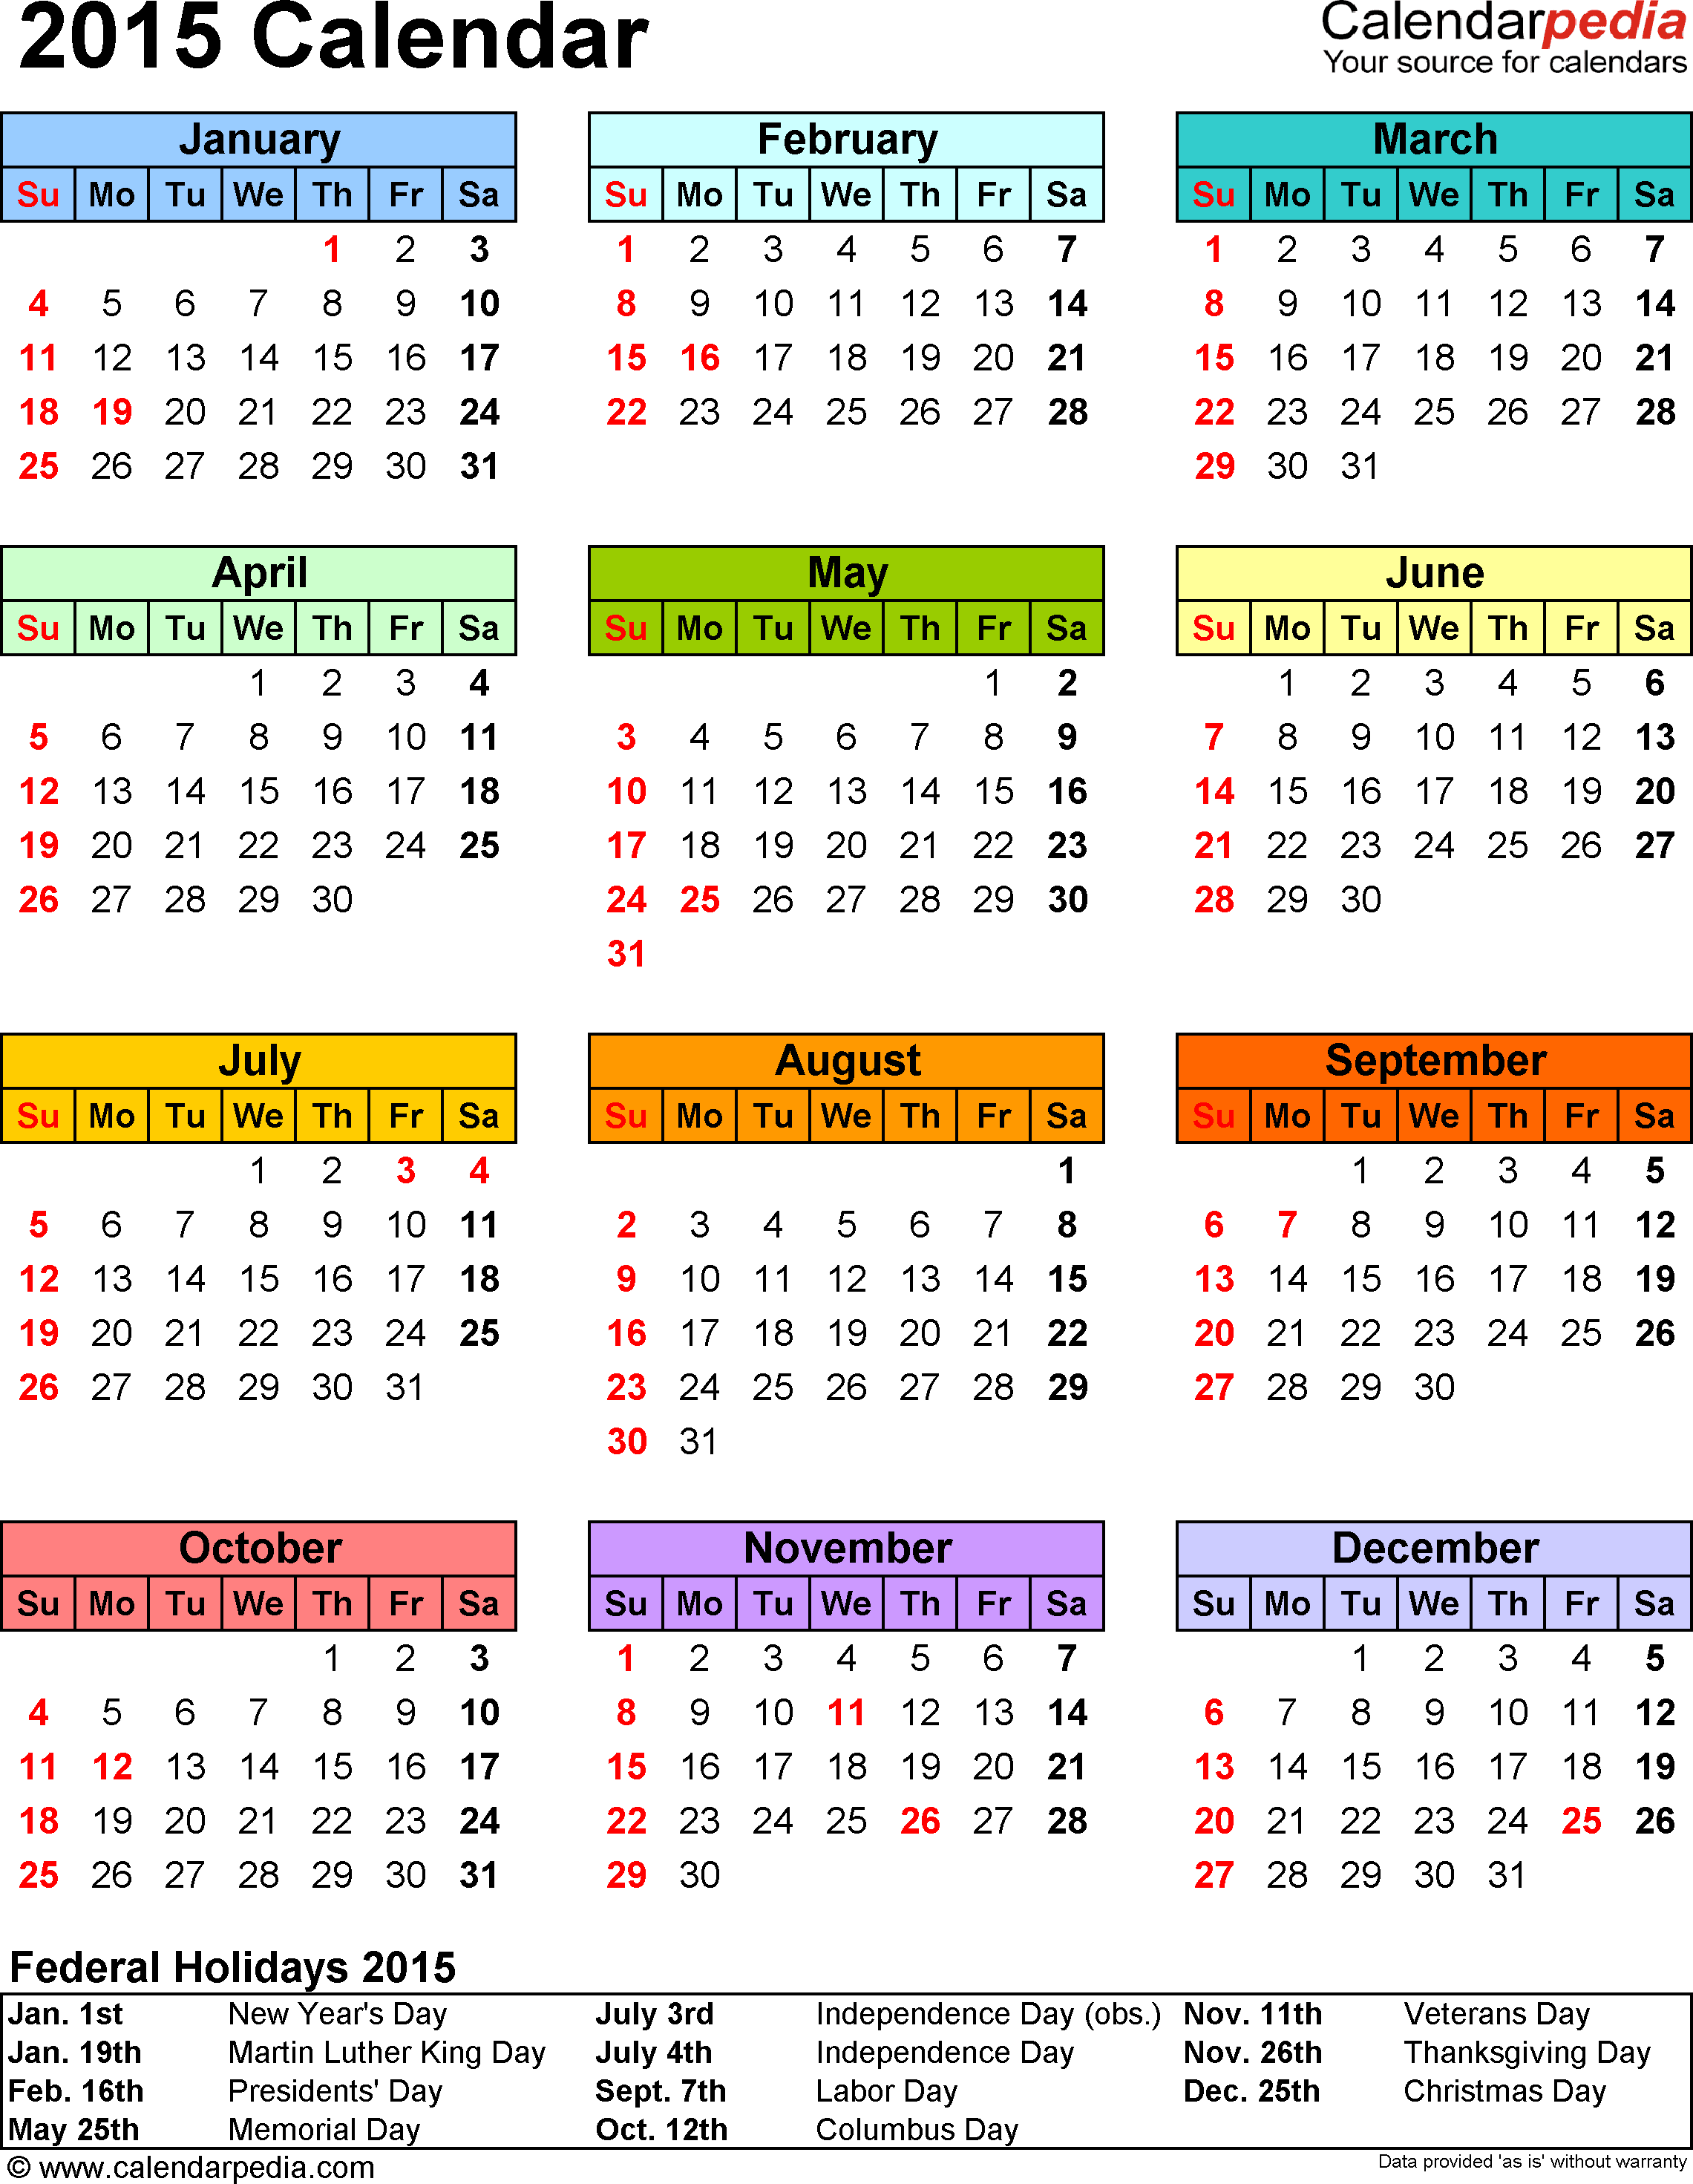 Template 13: 2015 Calendar for Word, 1 page, portrait orientation, in color